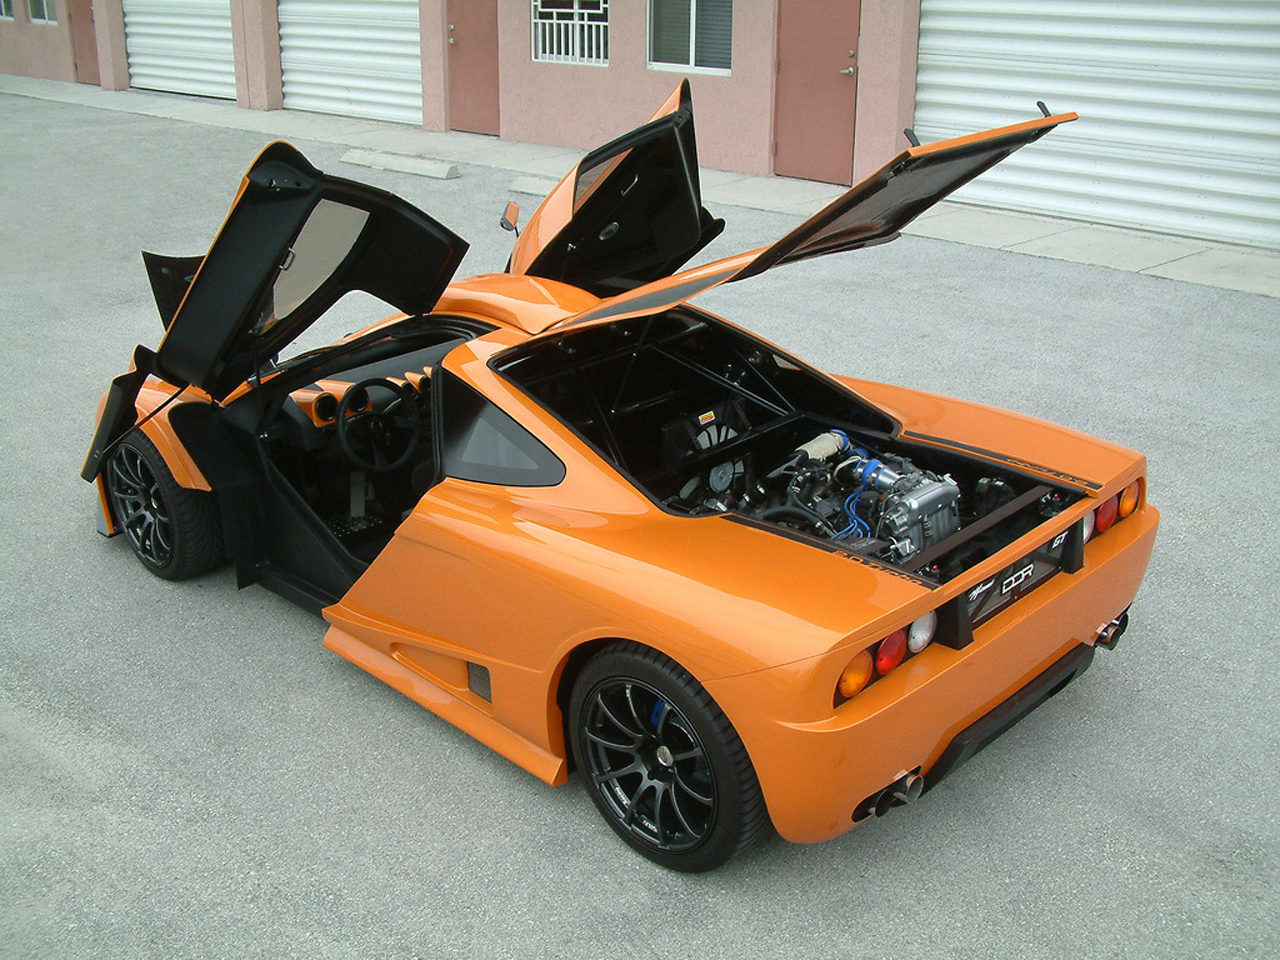 Auto Repair For Sale Miami: DDR Launches McLaren F1-influenced Miami GT With Acura RSX